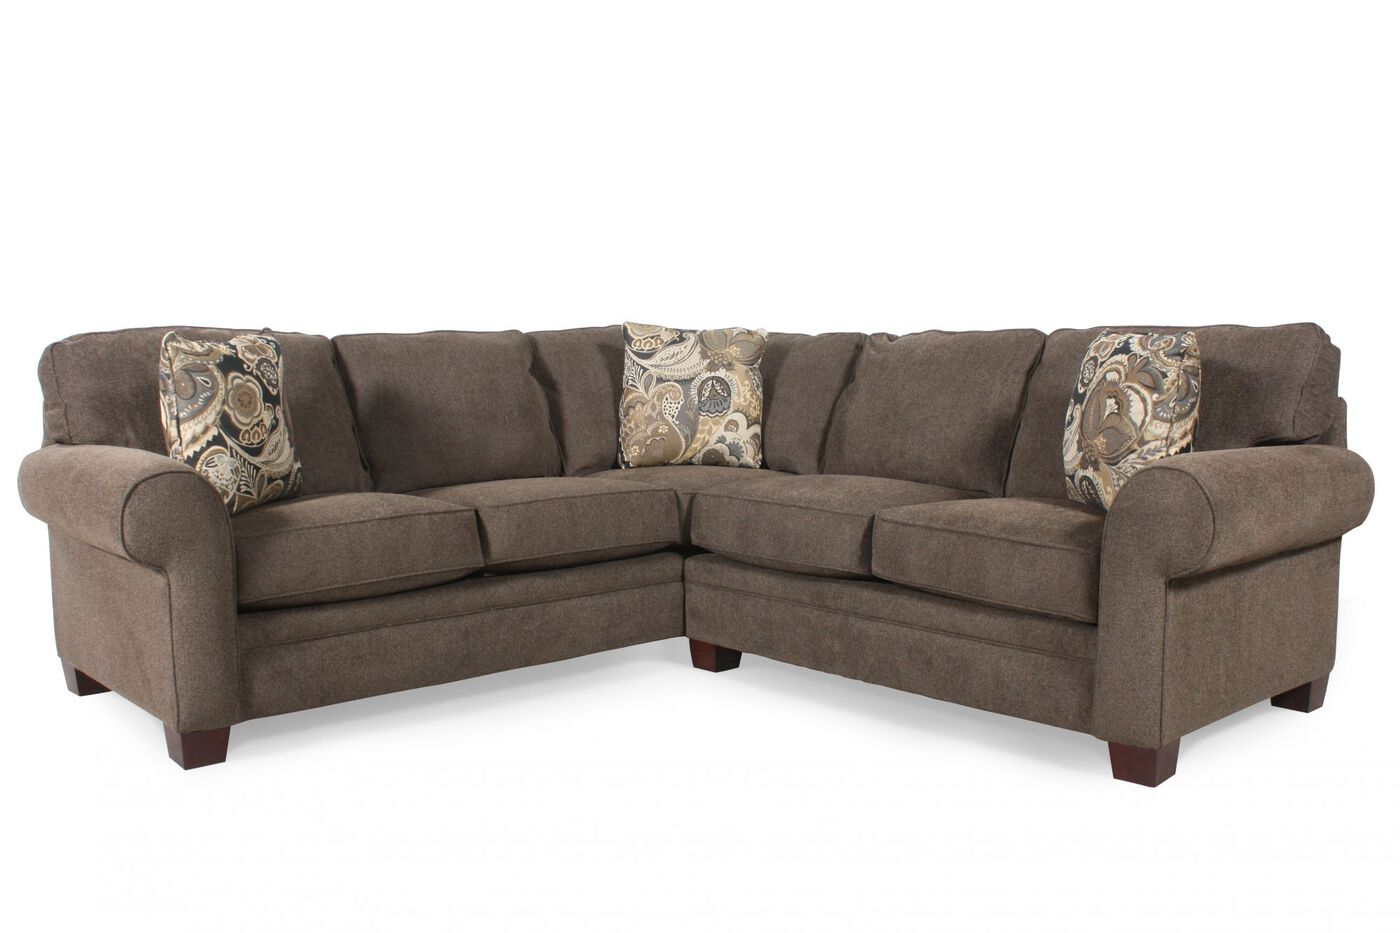 Broyhill choices two piece sectional mathis brothers for Sectional sofas mathis brothers